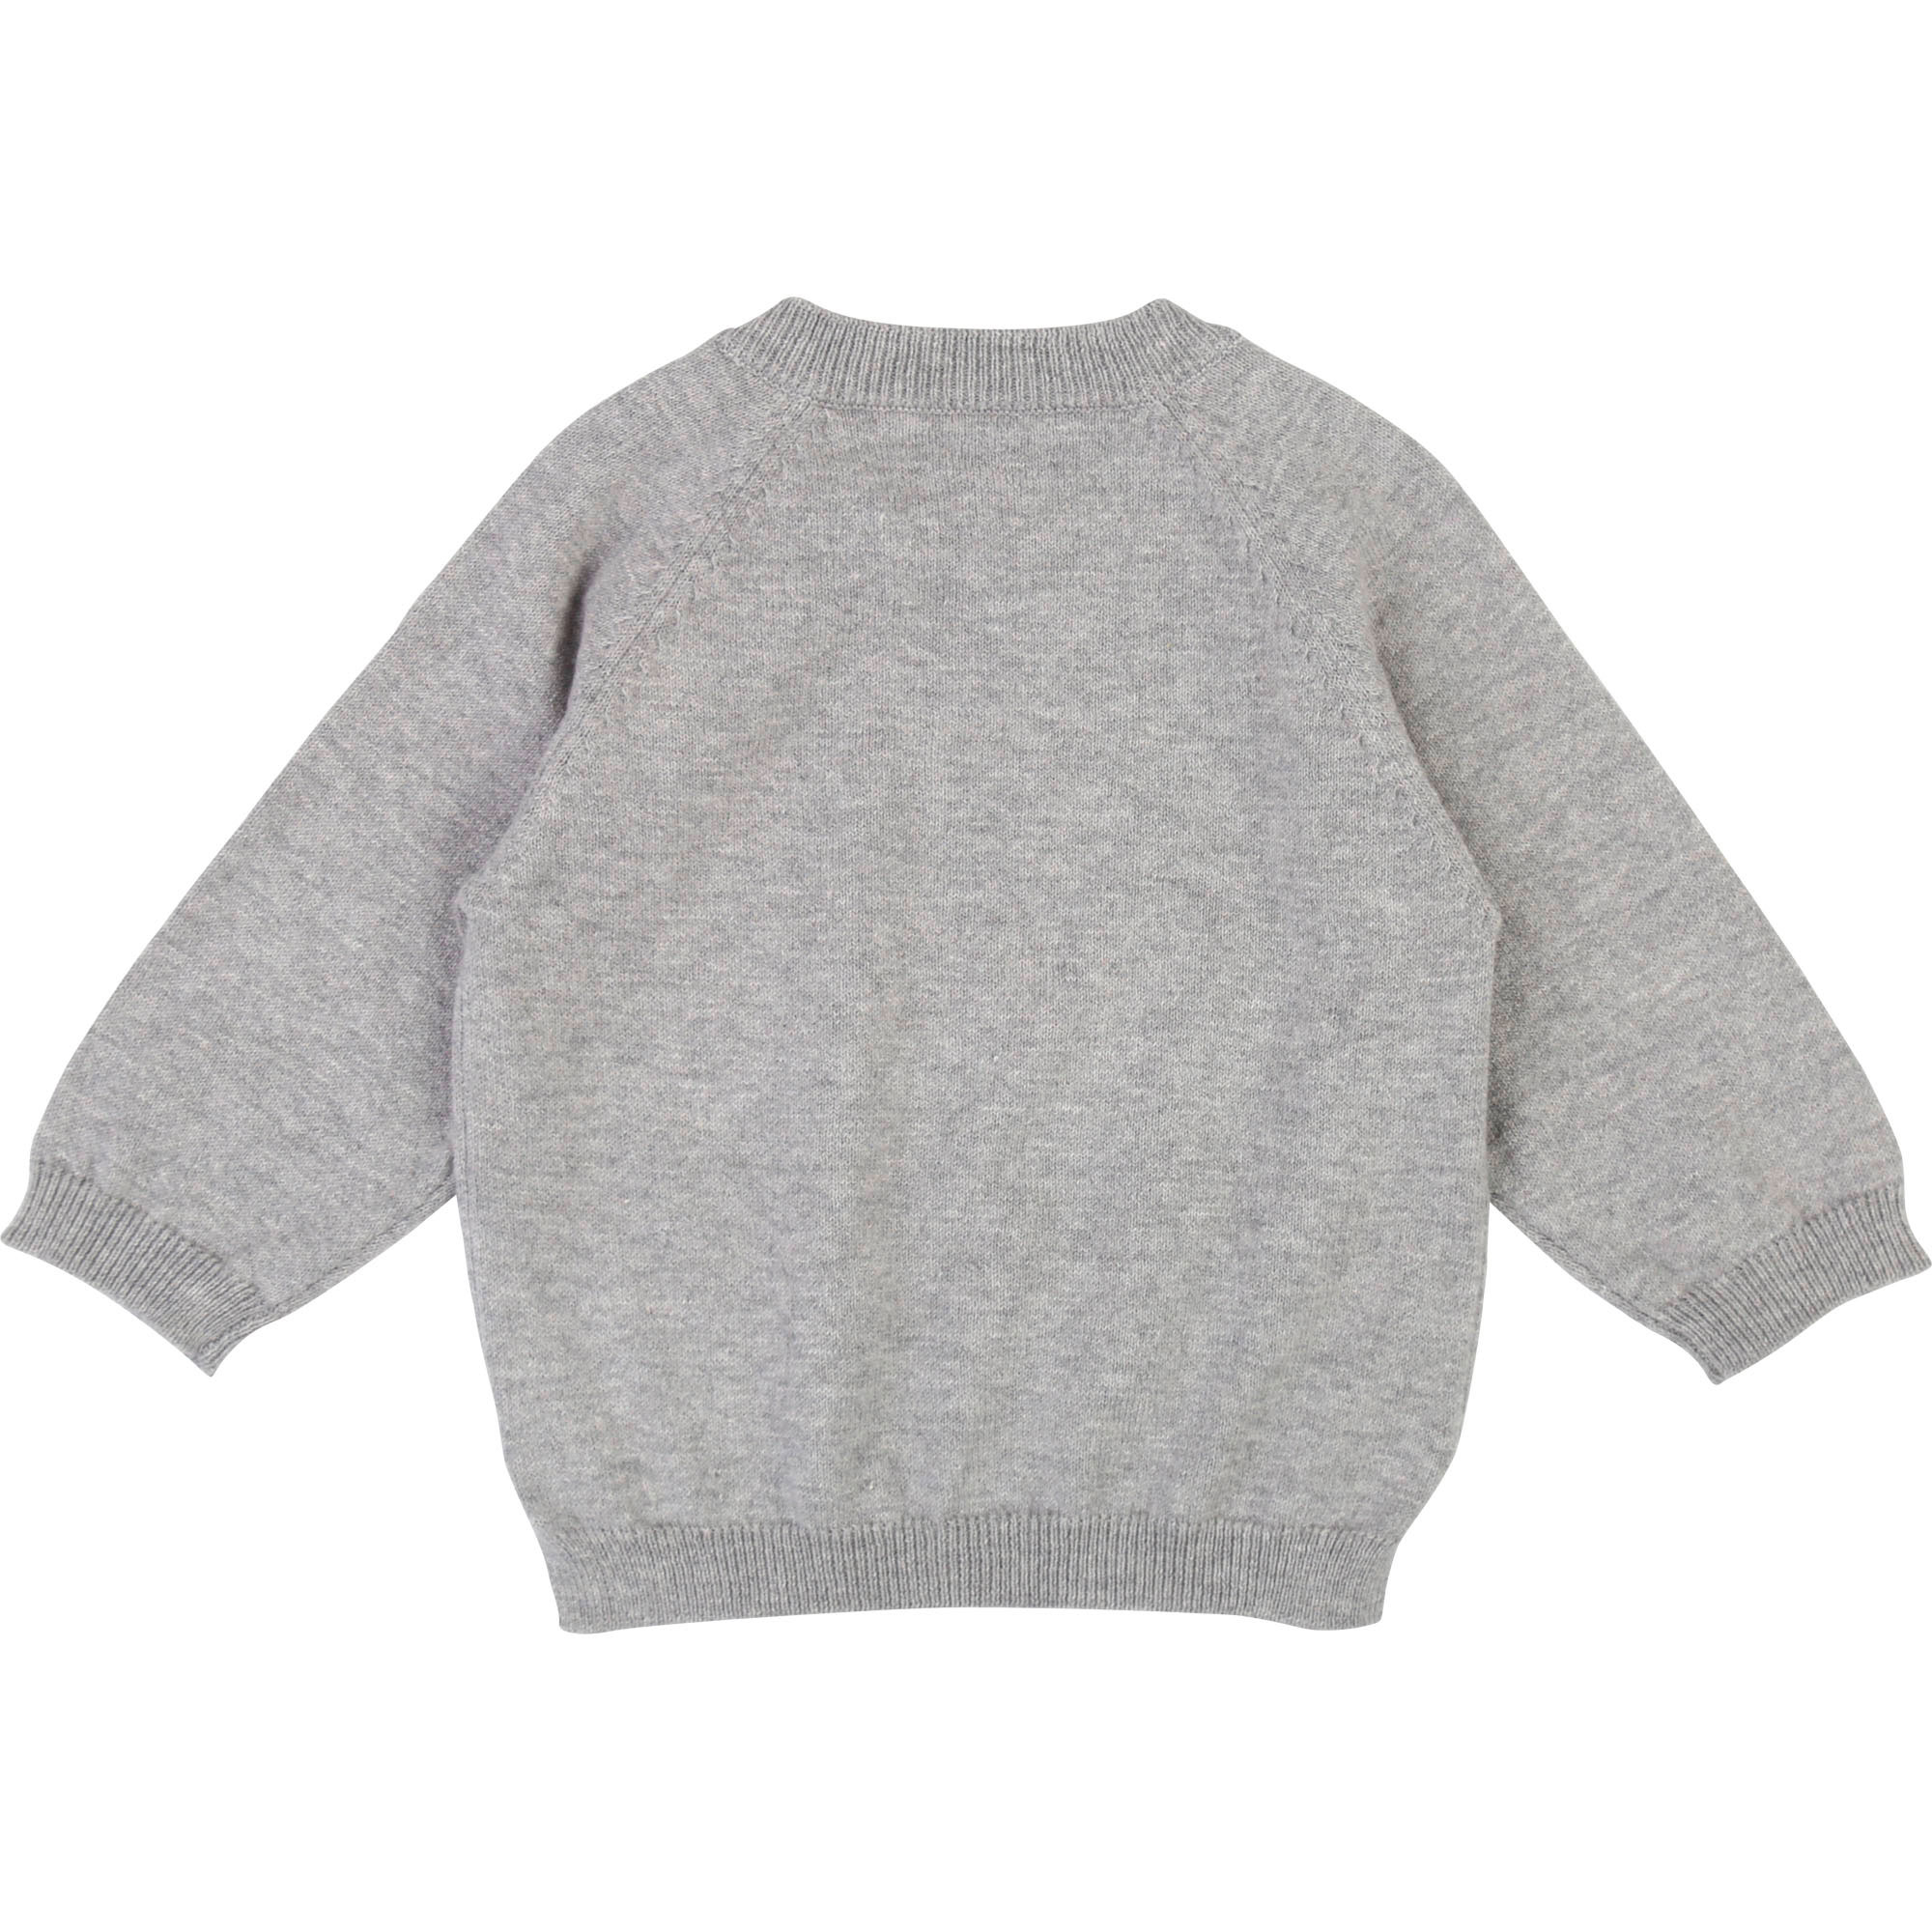 Knitted cotton jumper ZADIG & VOLTAIRE for UNISEX